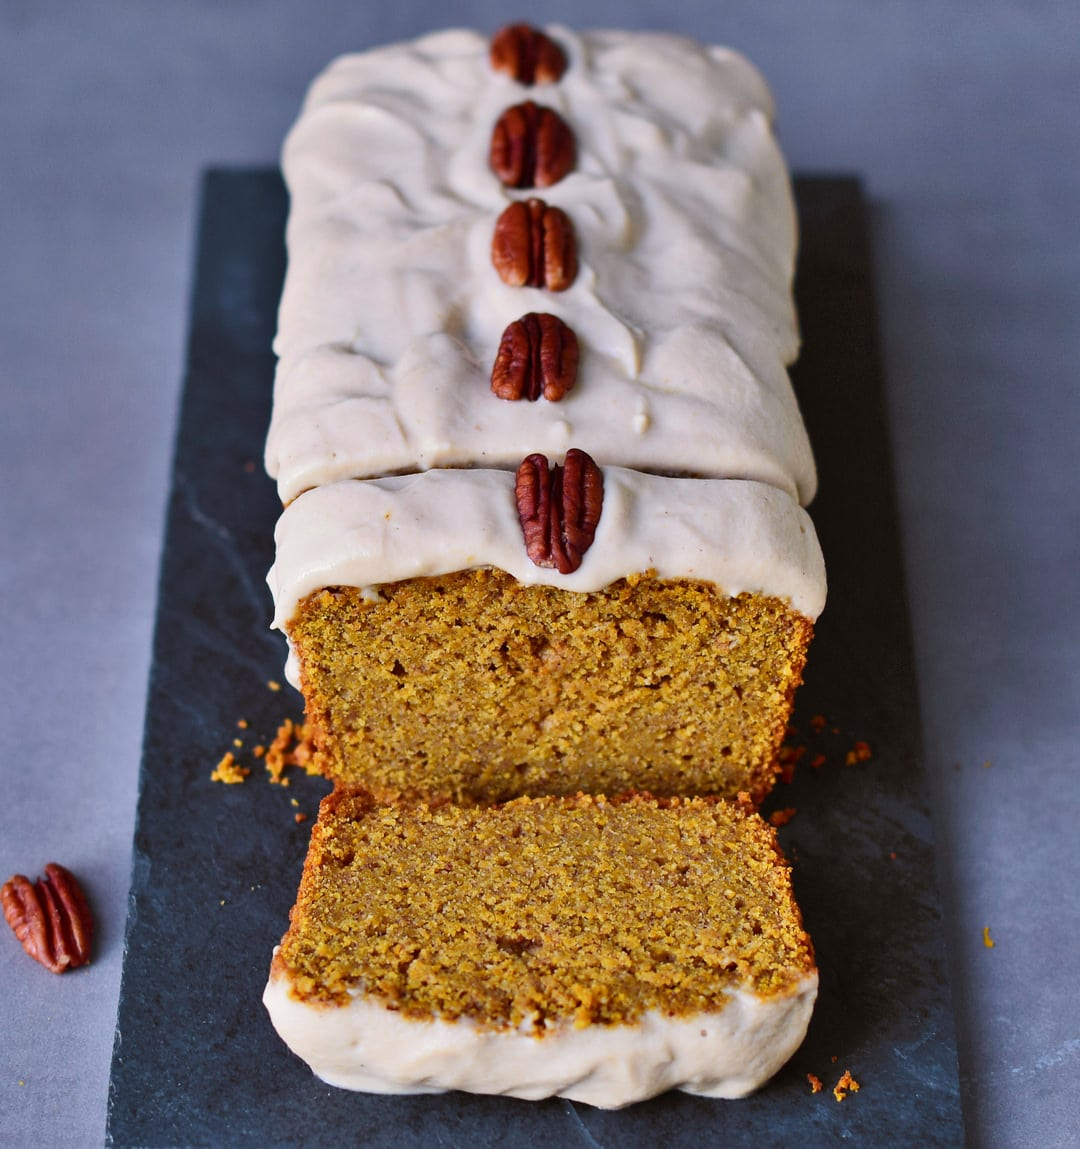 Vegan pumpkin cake with a fluffy cashew frosting. This vegan cake is gluten-free, oil-free, plant-based (egg-free, dairy-free), easy to make and healthy. Perfect recipe for autumn/fall